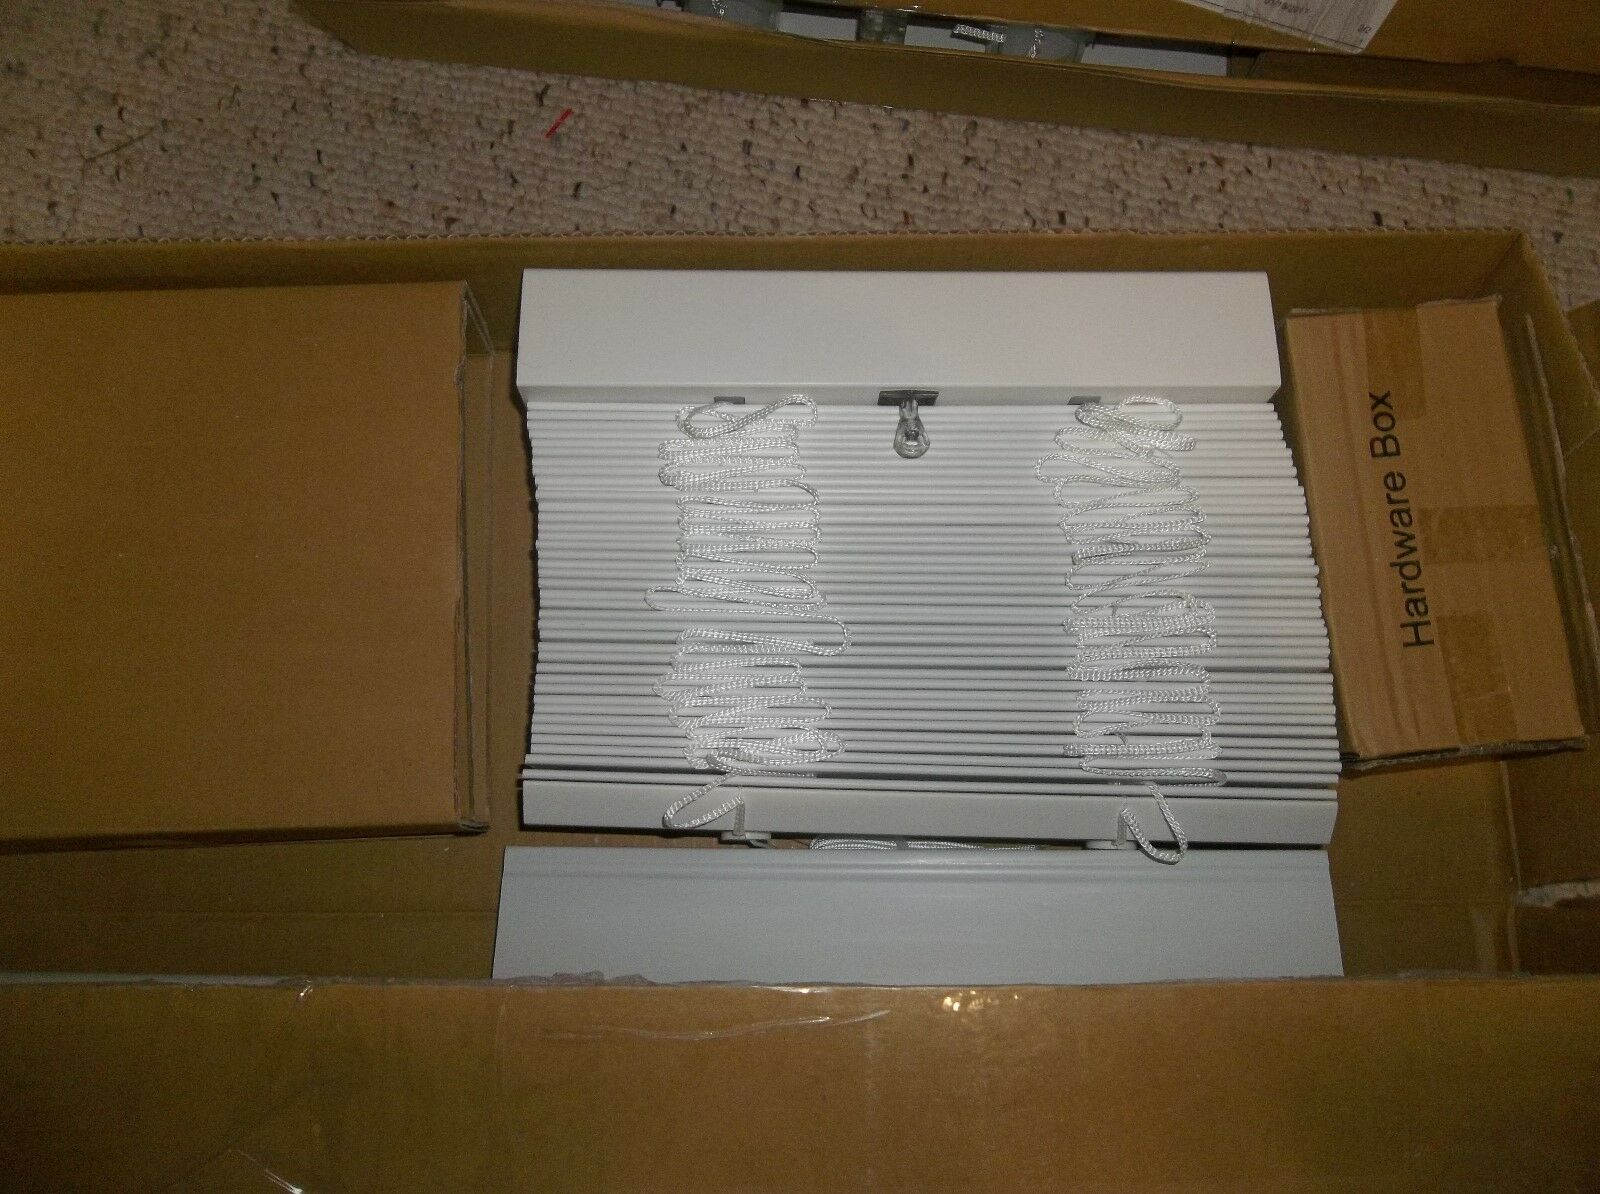 White 2-inch Faux Wood Blind 10 BY 72 INCHES LONG.GWF. WHITE